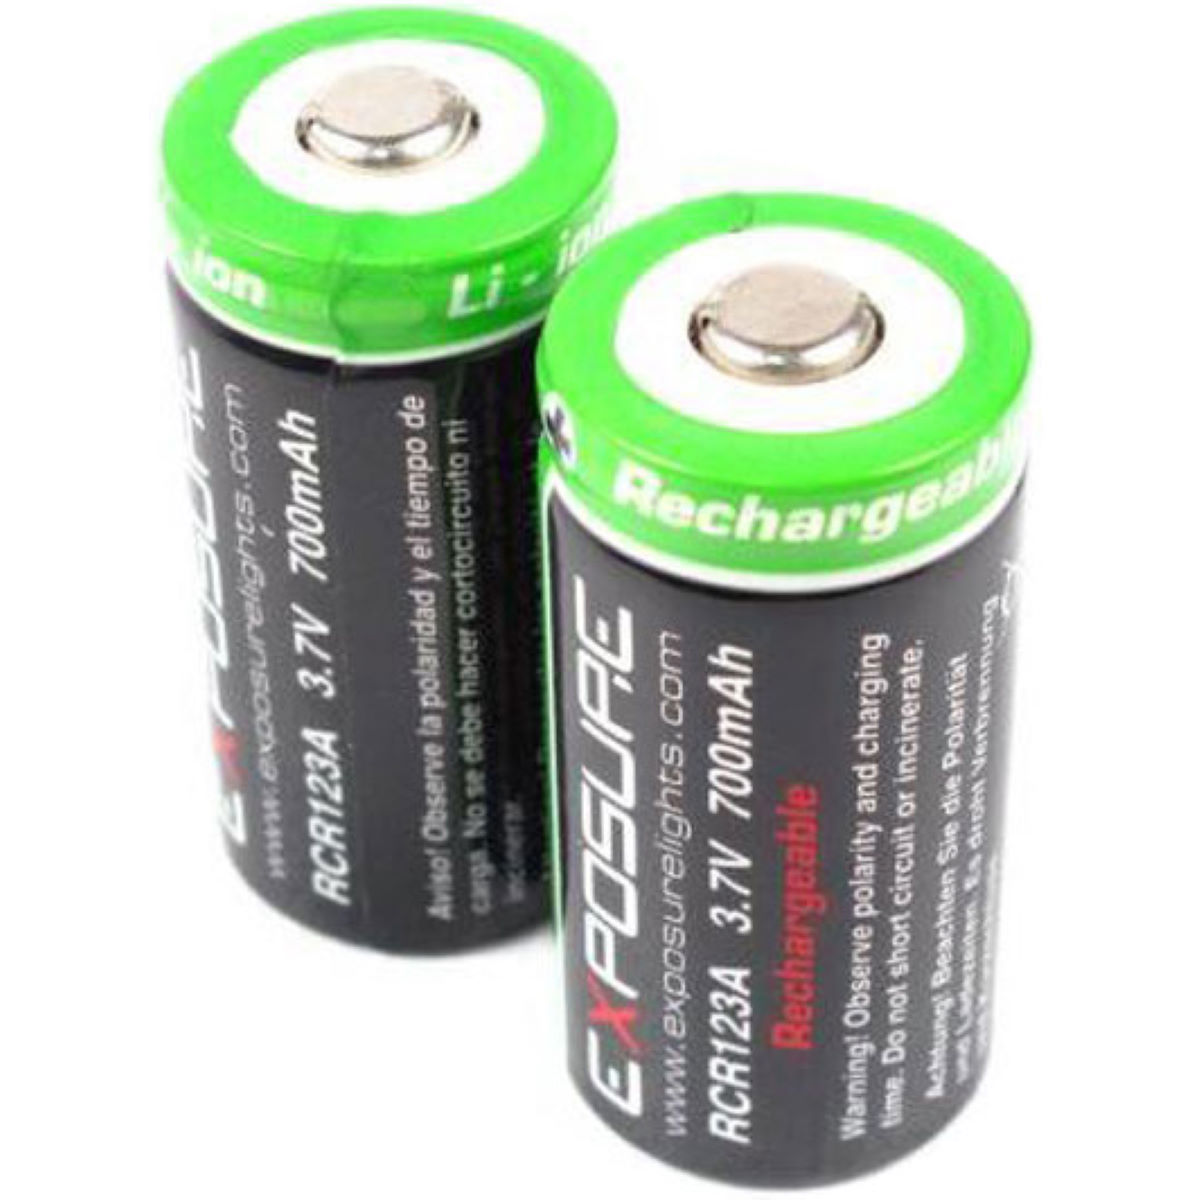 Exposure Rechargeable Rcr123 Batteries - Baterías y pilas